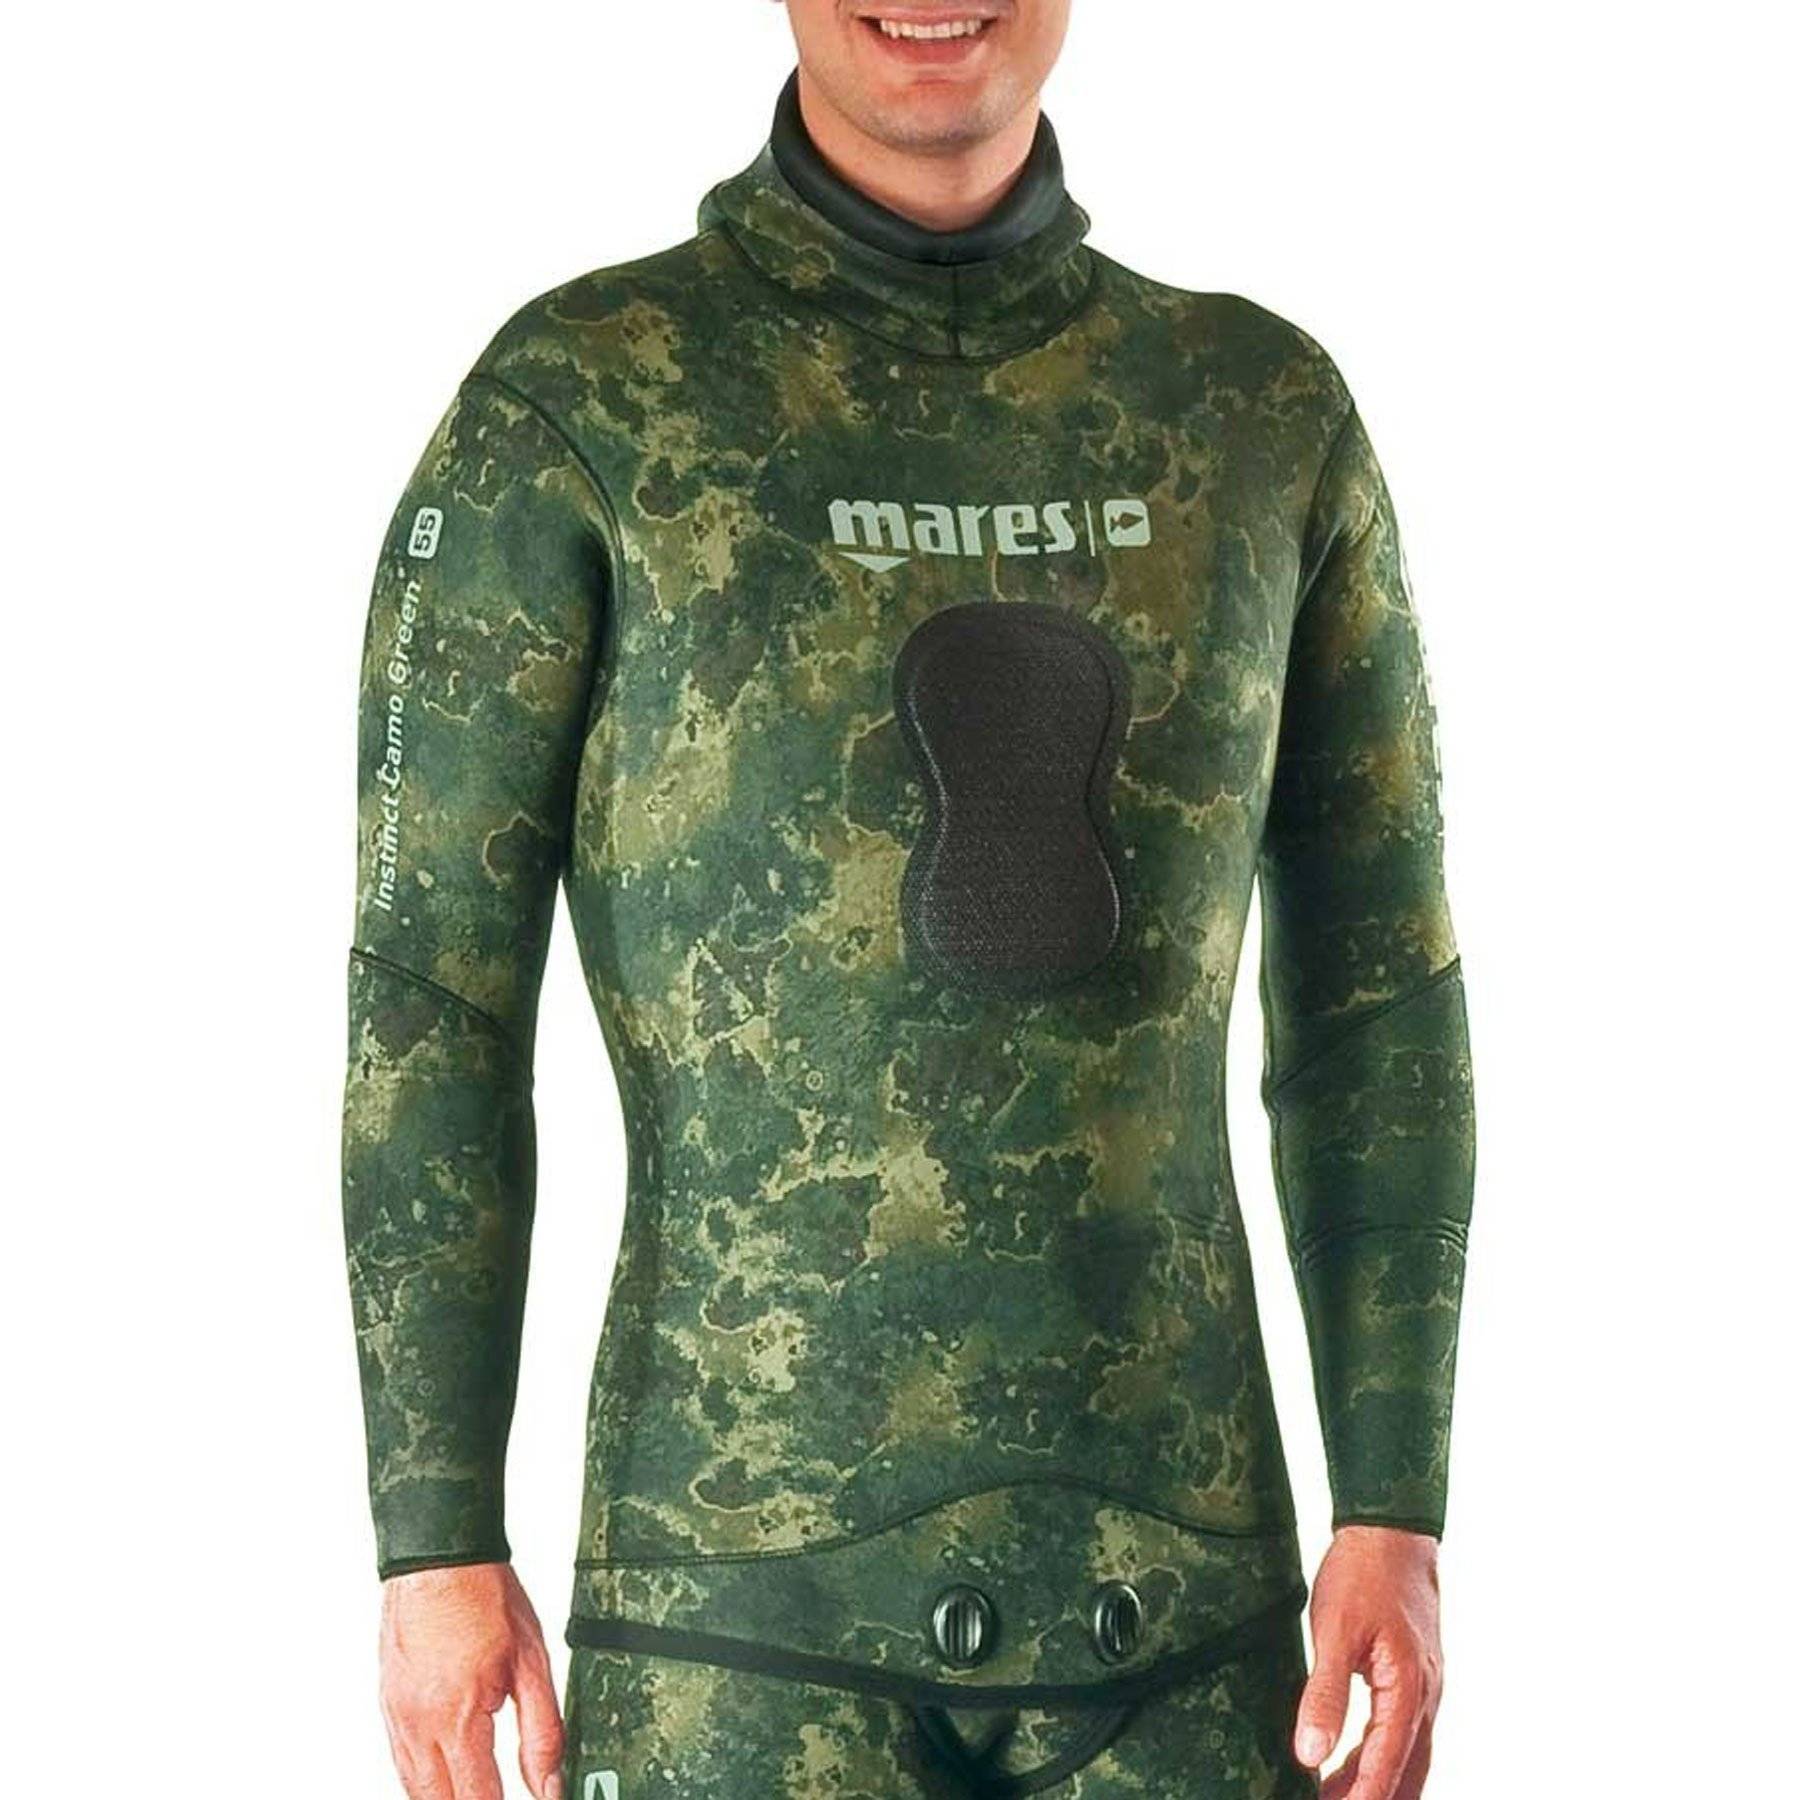 Mares Pure Instinct 5mm Jacket, Green Camo, S8 3X-Large by Mares